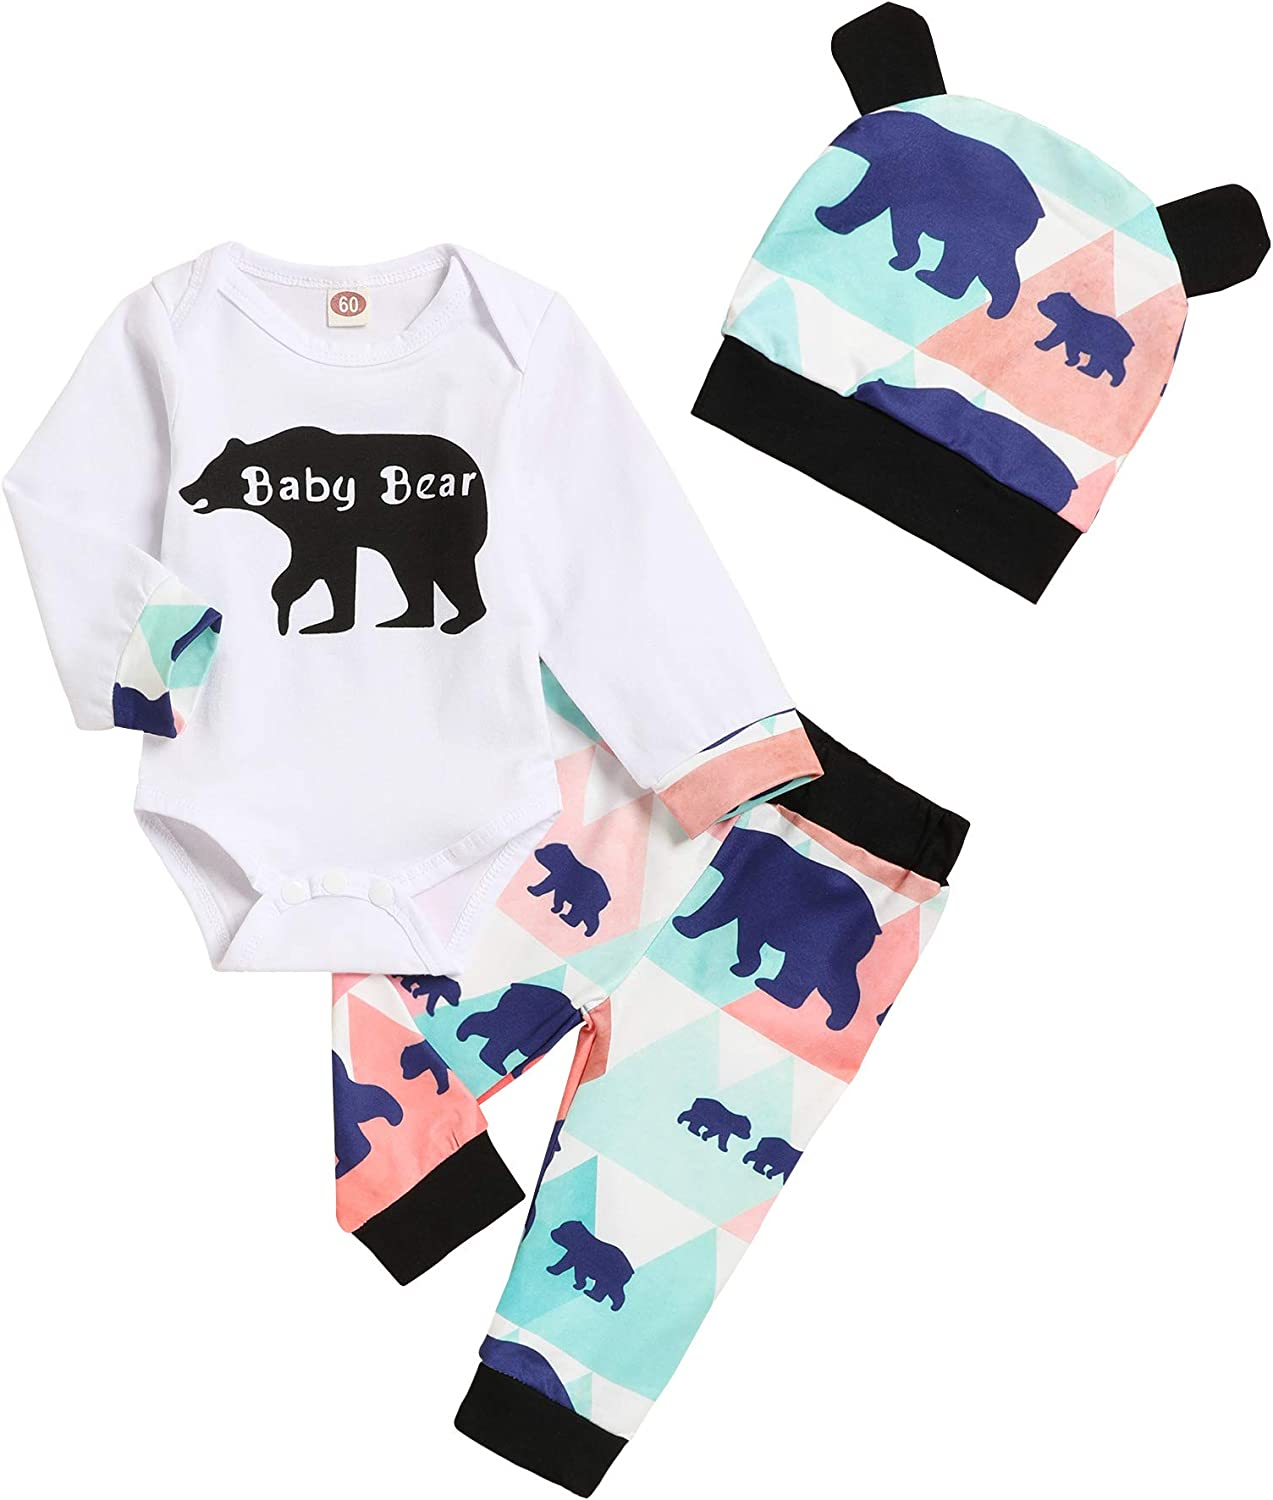 Newborn Baby Boys Girls Clothes Baby Bear Long Sleeve Bear Print Pants Outfit Sets + Hat